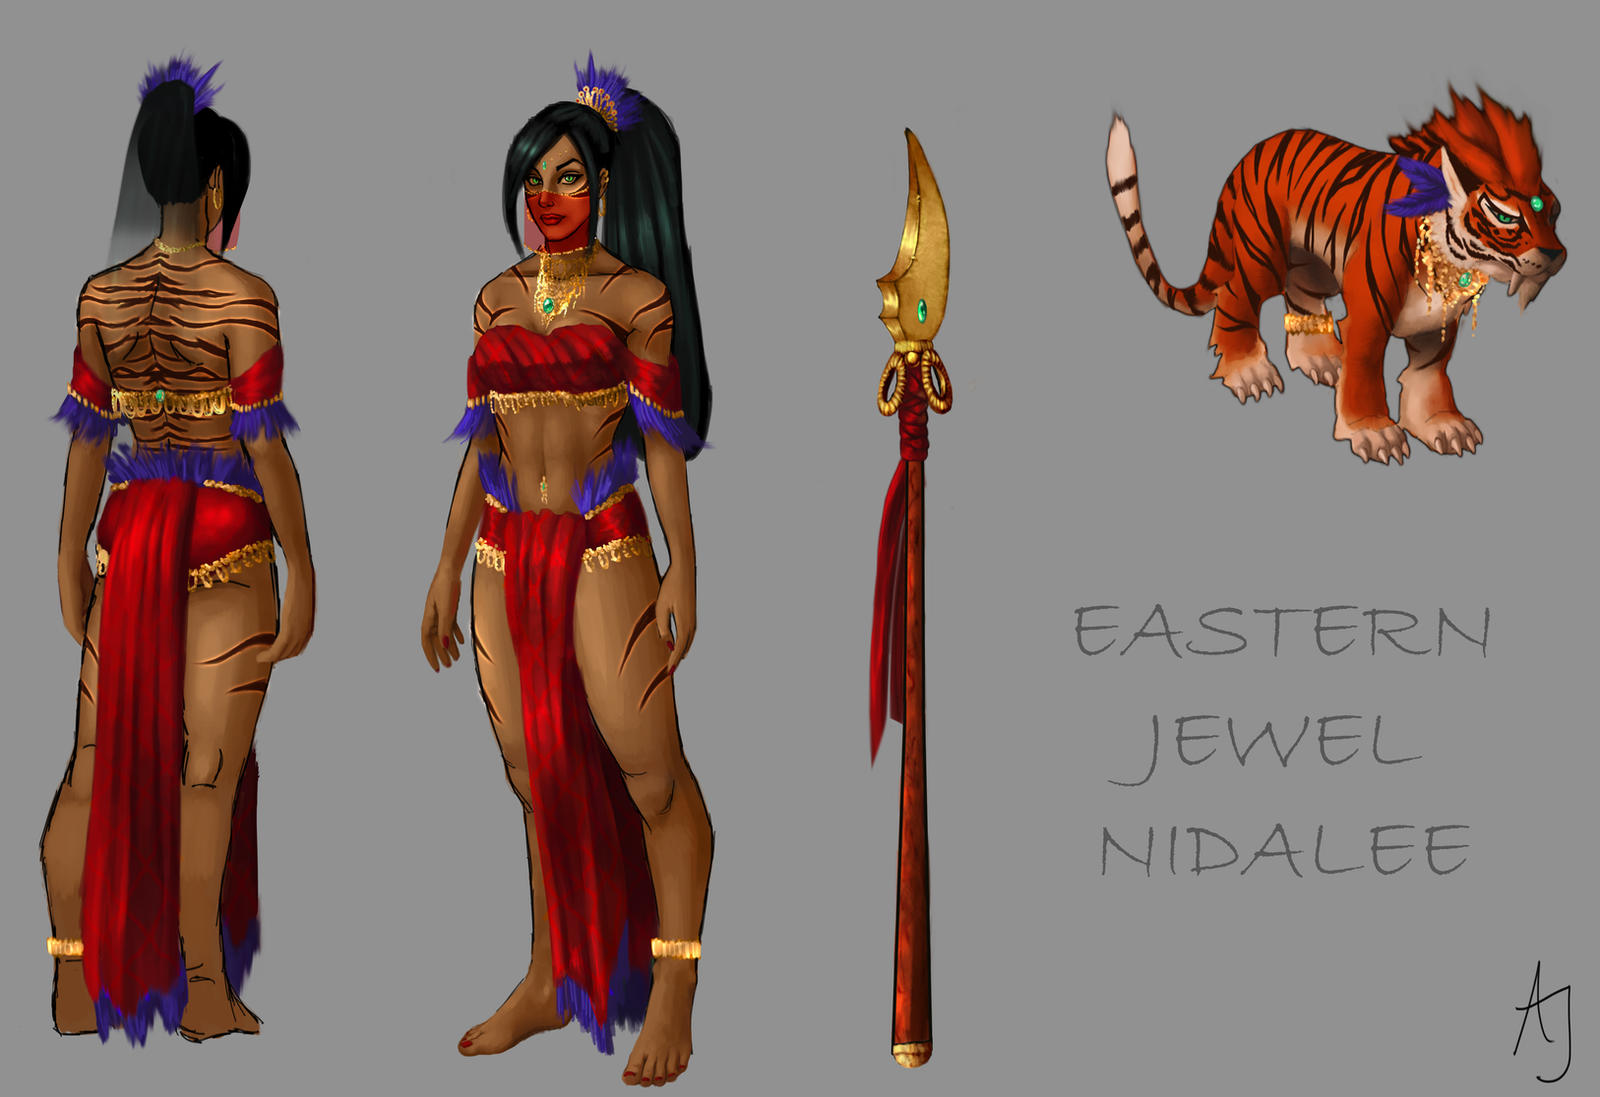 Eastern Jewel Nidalee by Xelandra